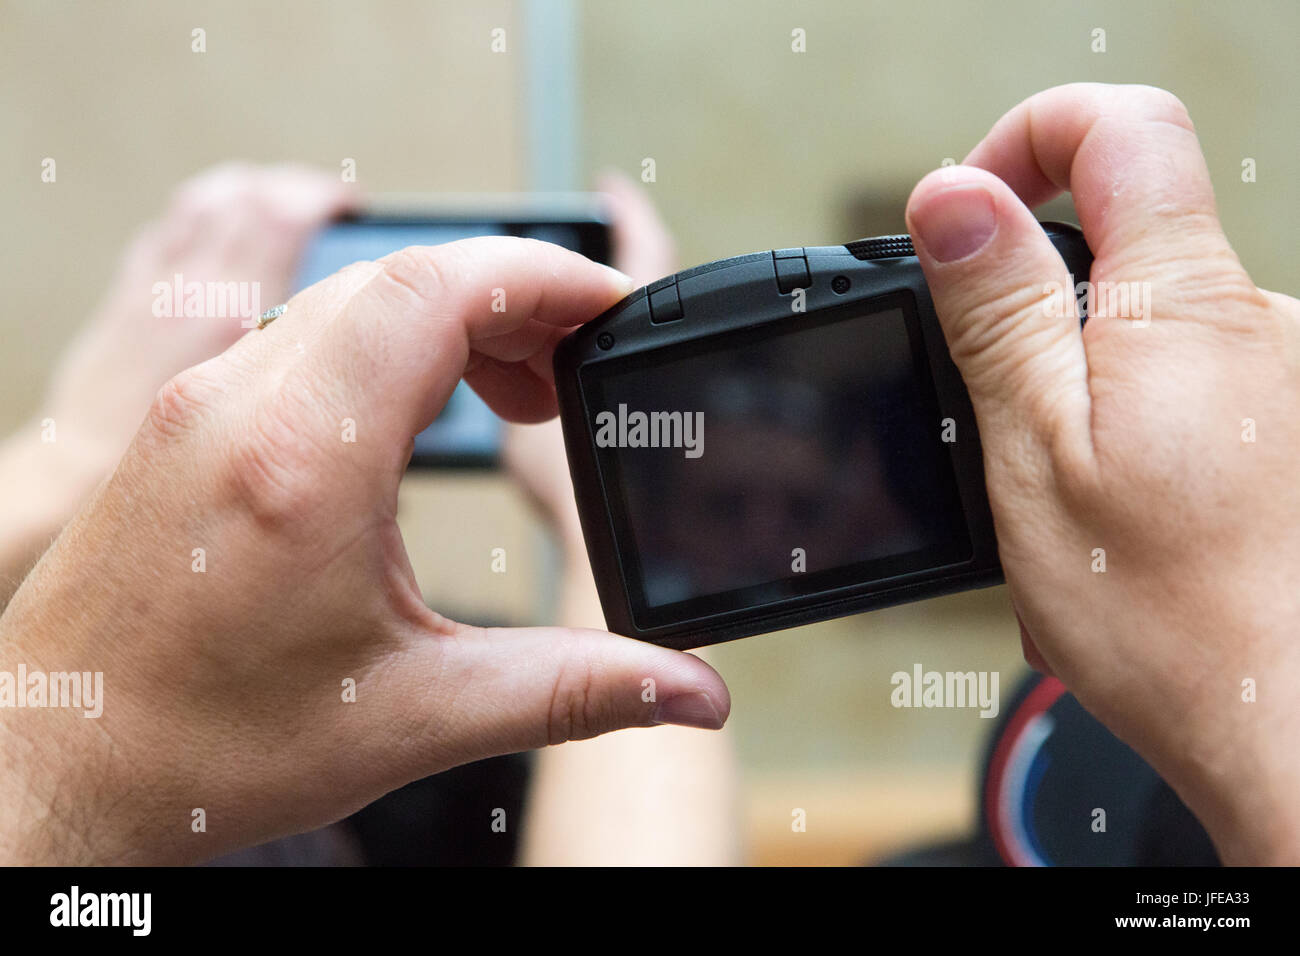 People holding their cameras to take pictures in the Louvre Museum. - Stock Image